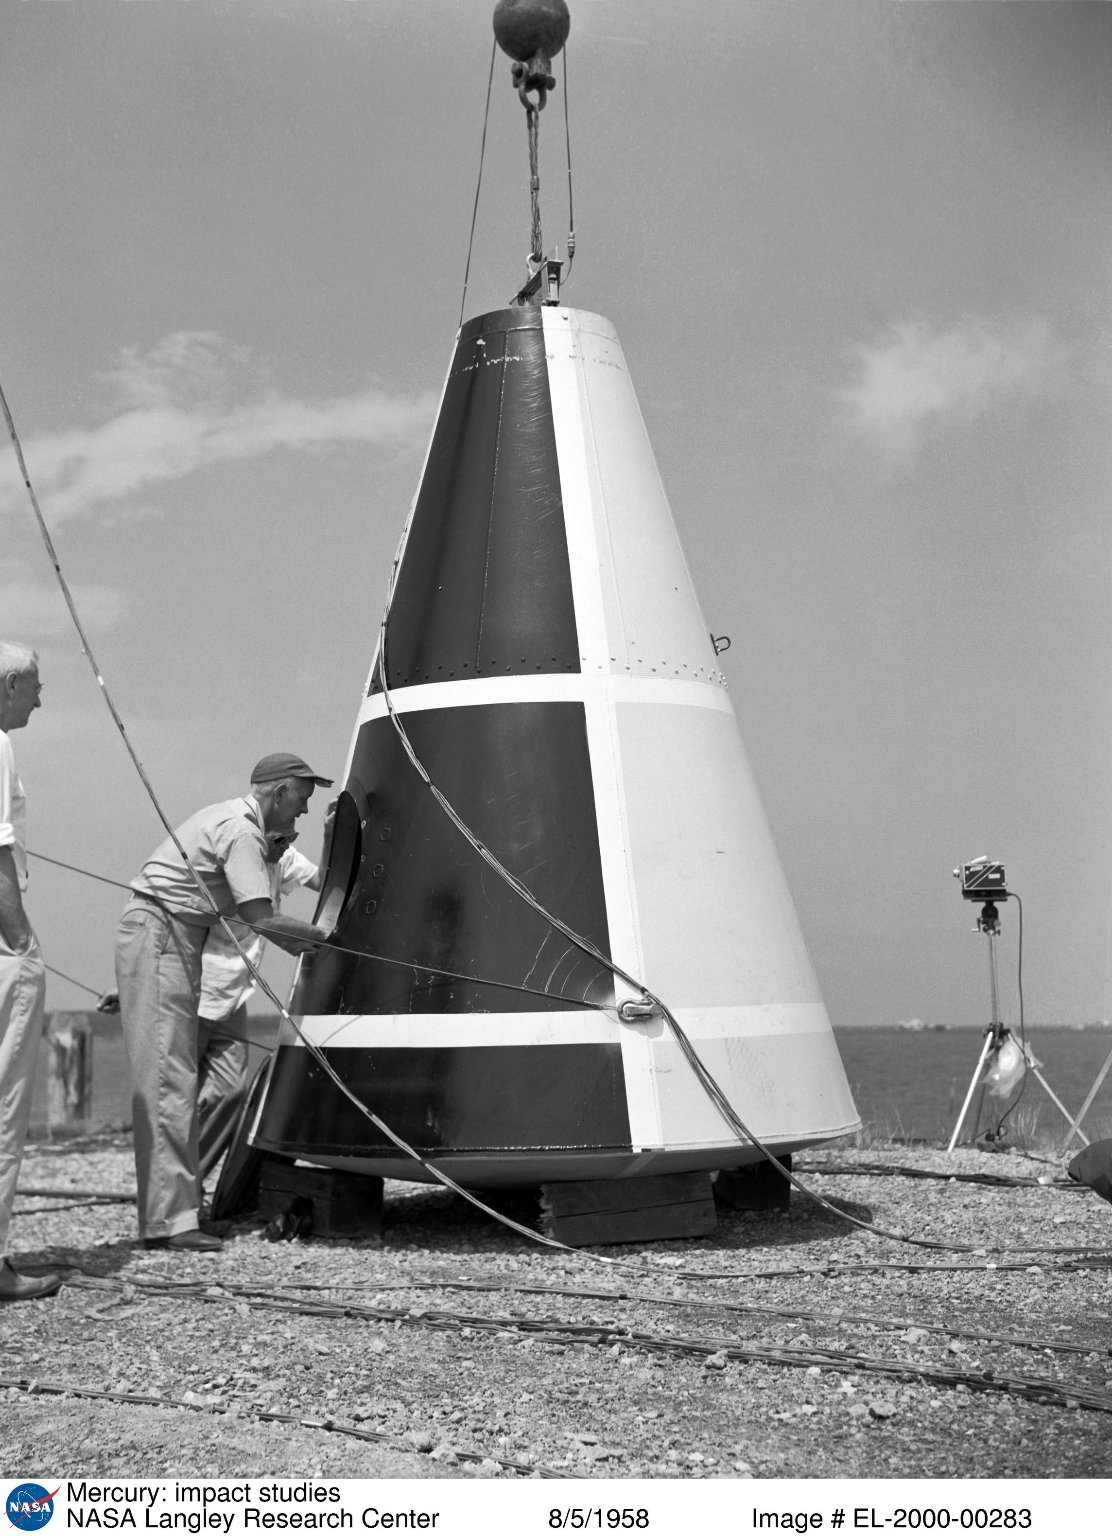 Impact test conducted by Langley's Hydrodynamics Division.